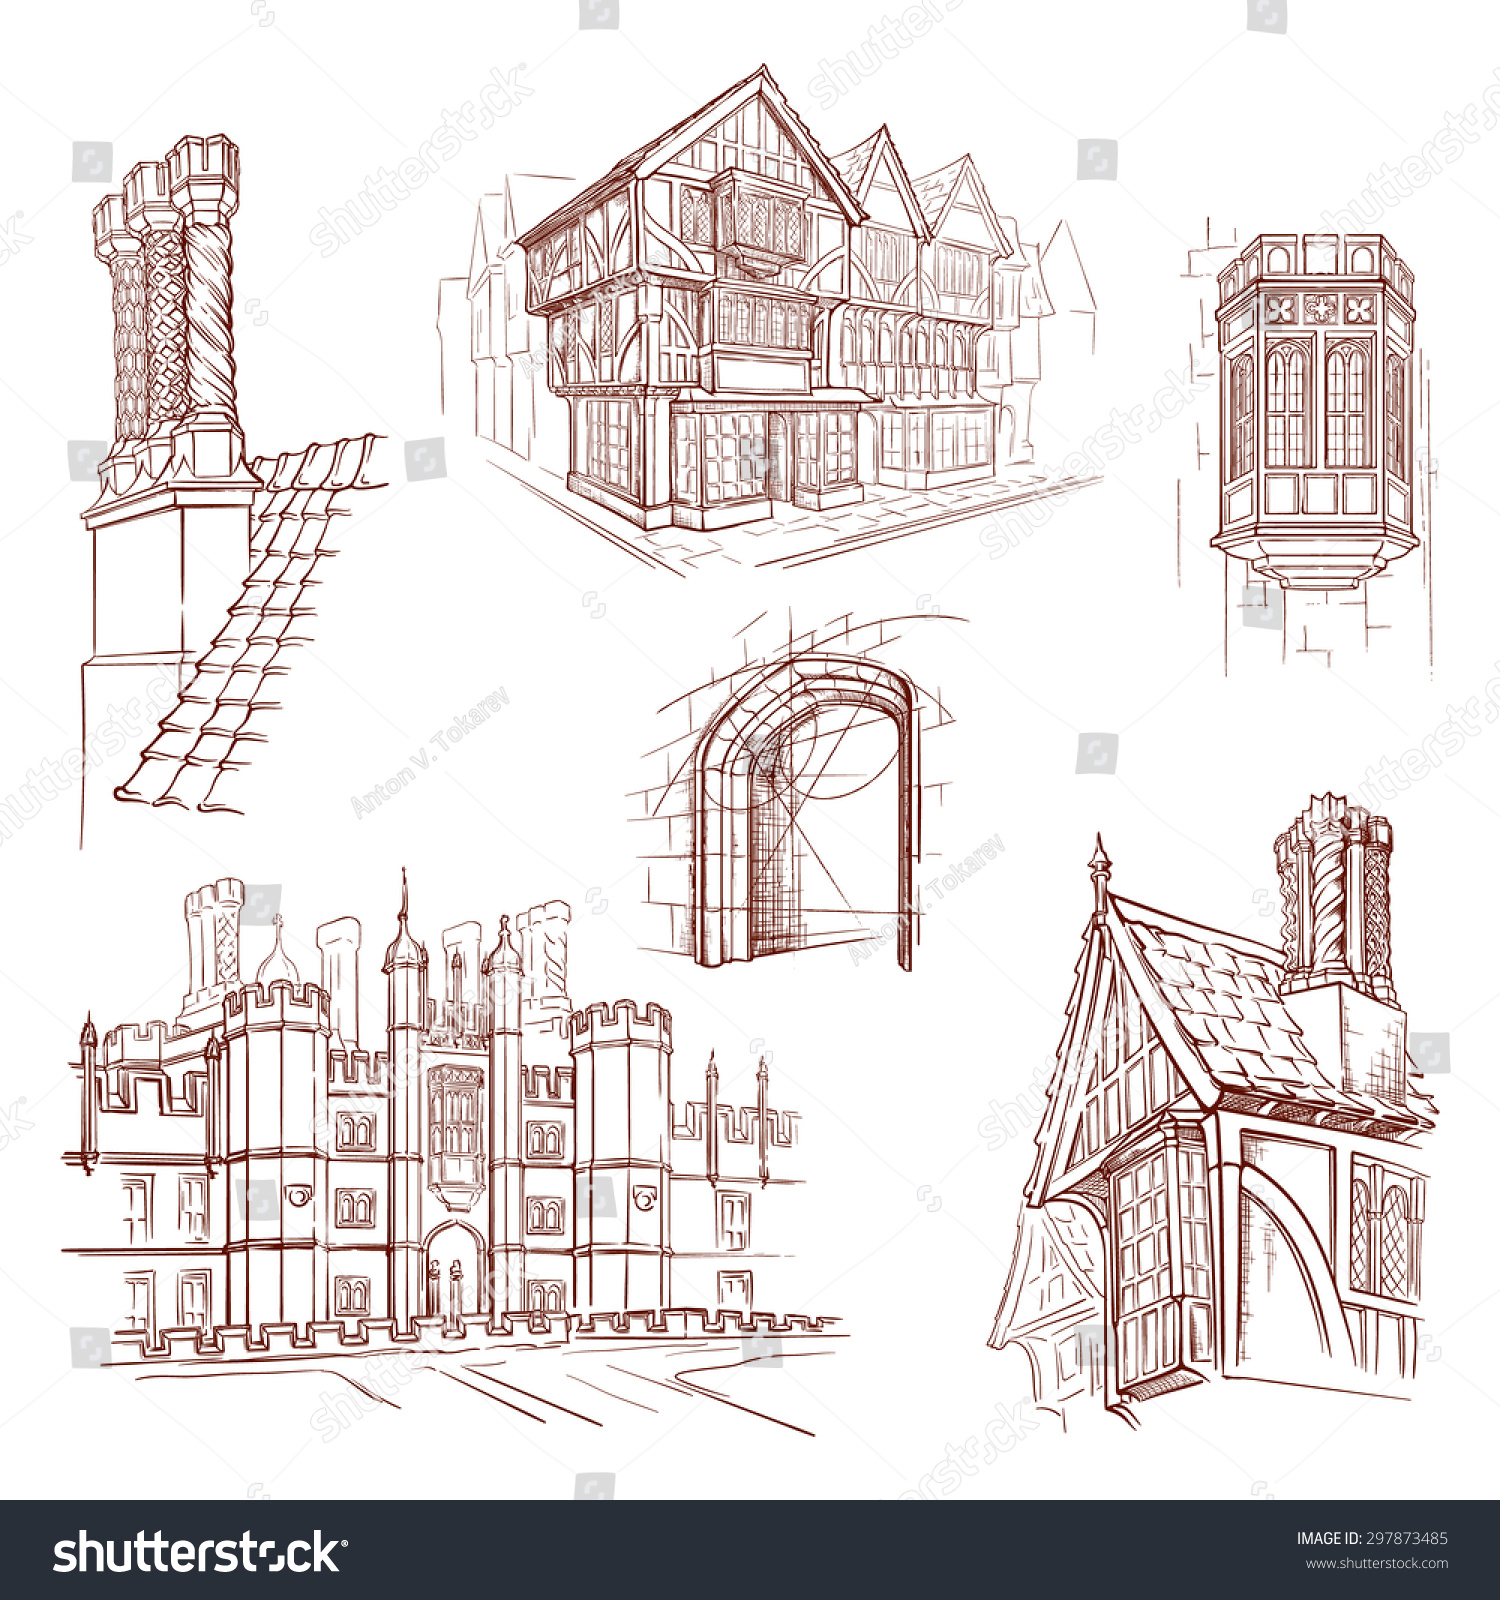 Architectural Drawing Set history british architectural styles tudor architecture stock